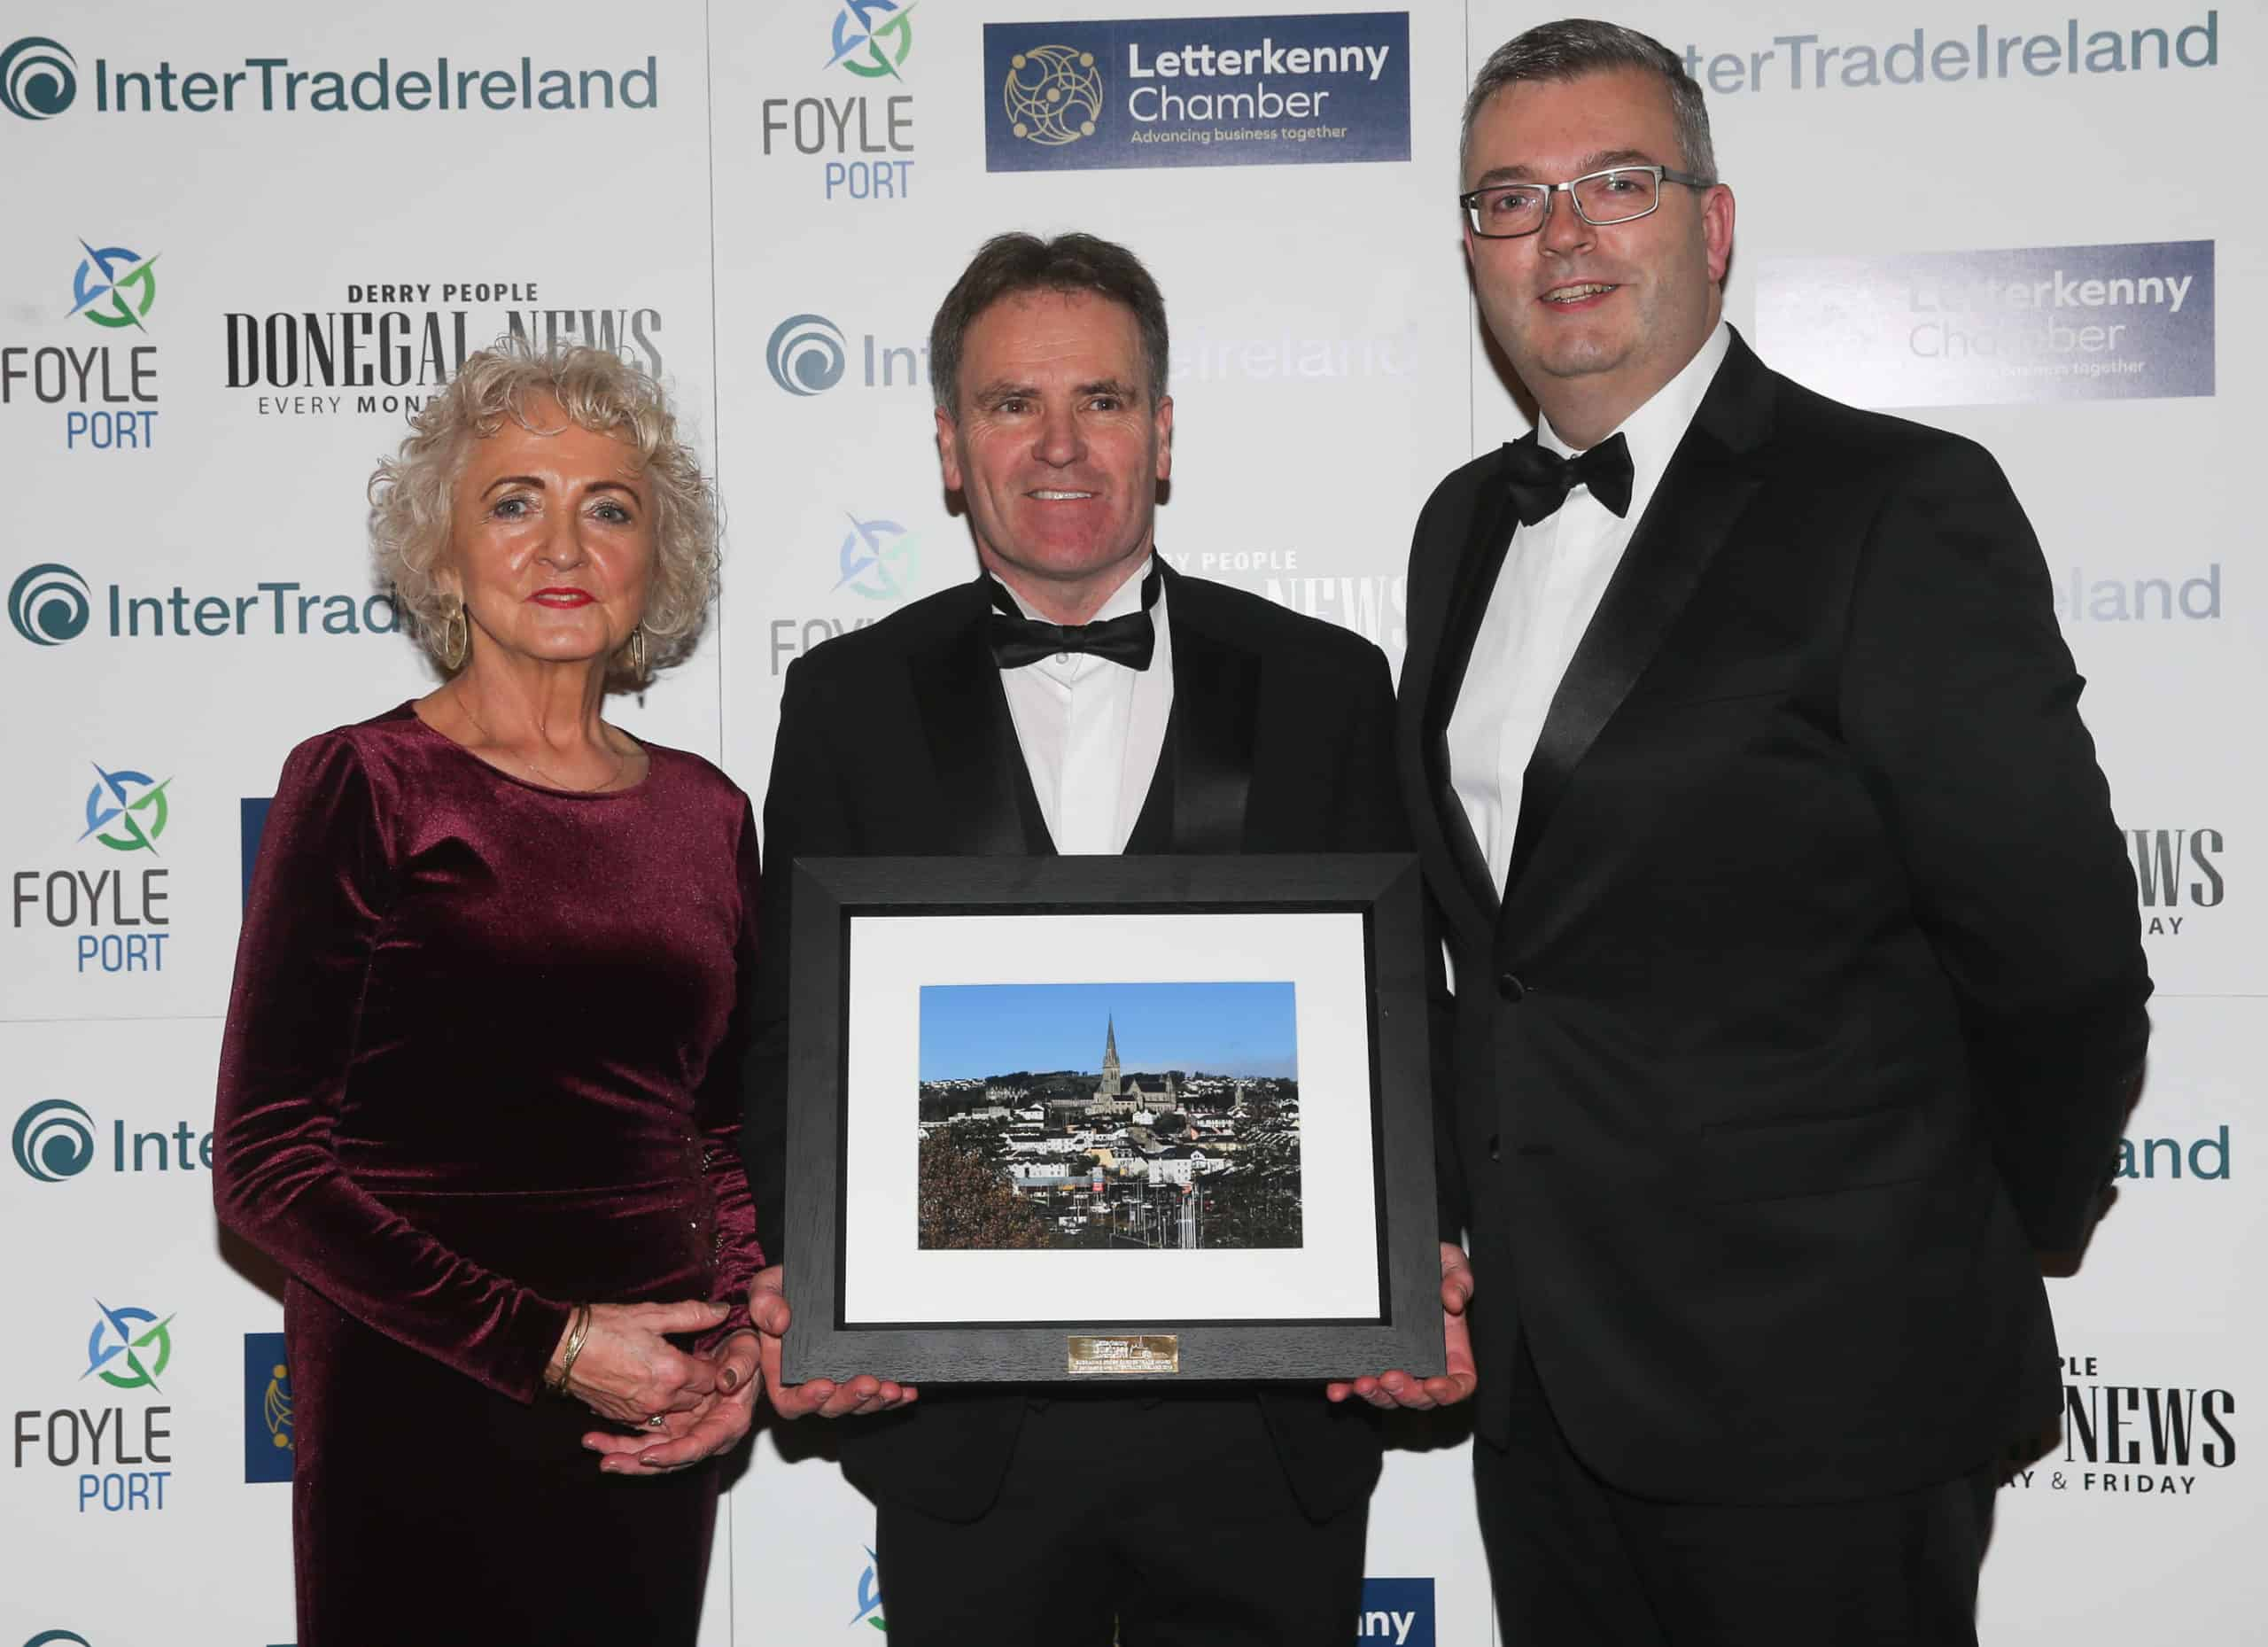 Embracing Cross Border Trade Award winner PJ Patton, PJ Design presented by Claire McNickle LK Chamber and Grant Gilmore, InterTradeIreland.